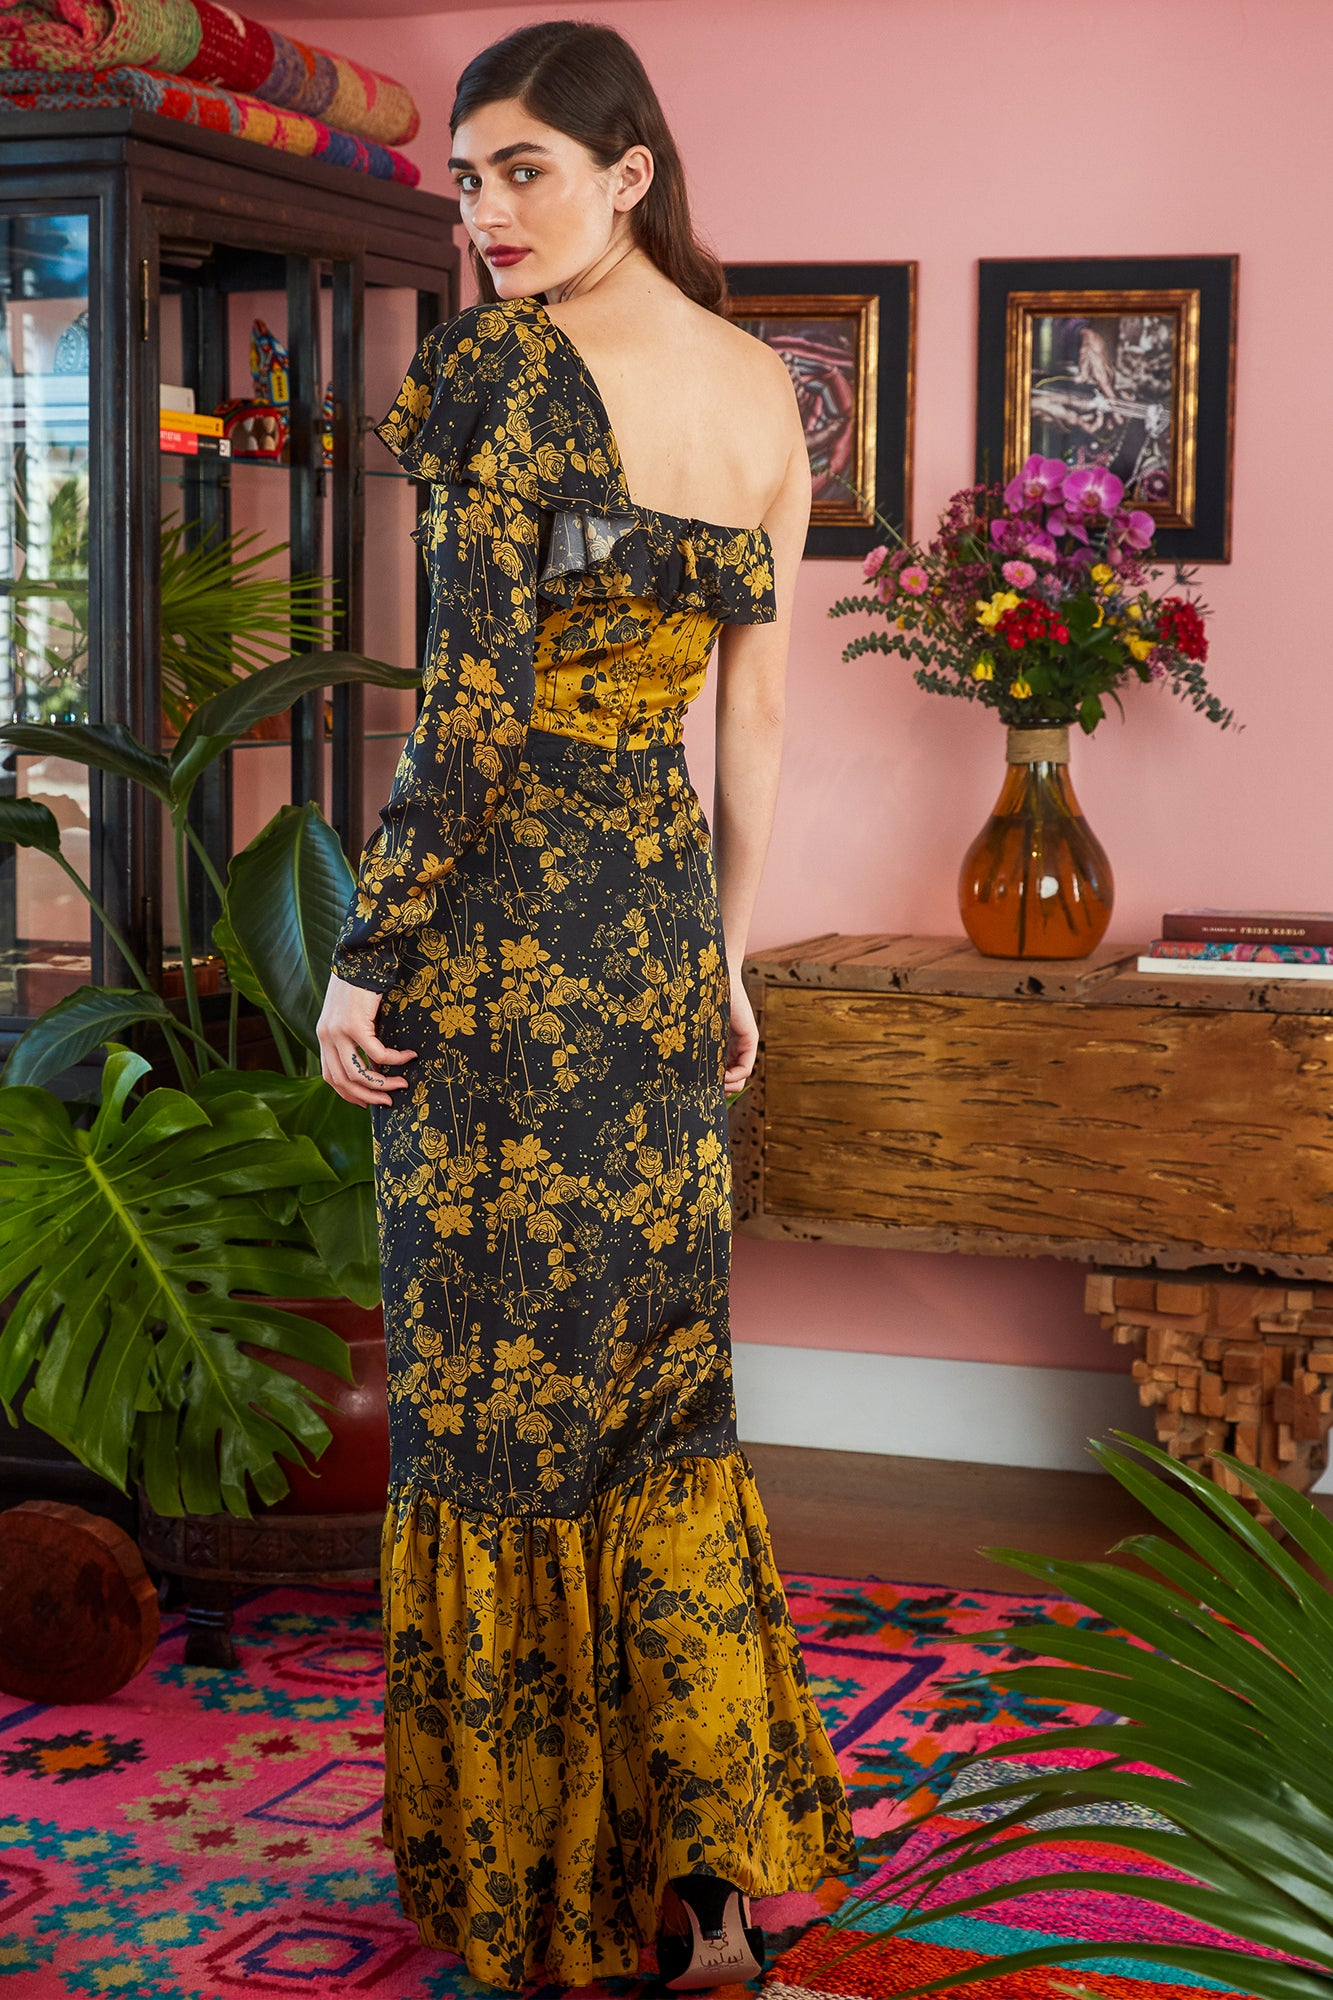 Carolina K Uma Dress Tumeric Roses